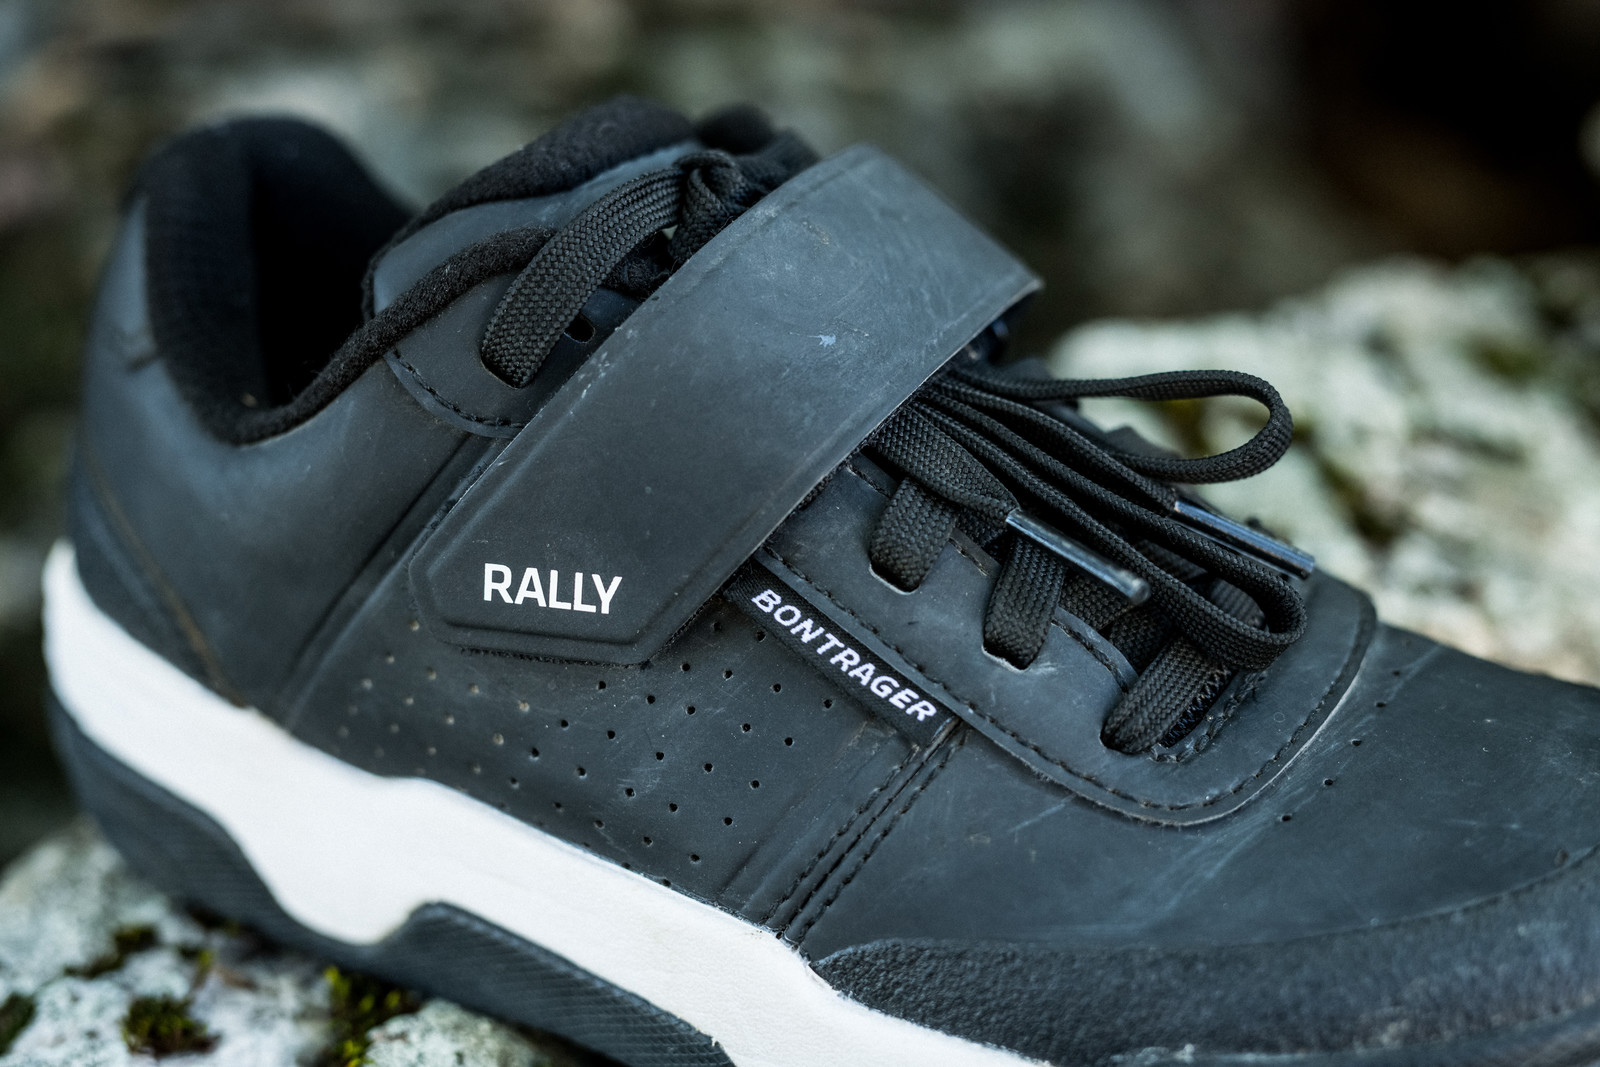 Bontrager Rally Clipless Shoe - PIT BITS - 2019 Crankworx Whistler Bikes and Tech - Mountain Biking Pictures - Vital MTB